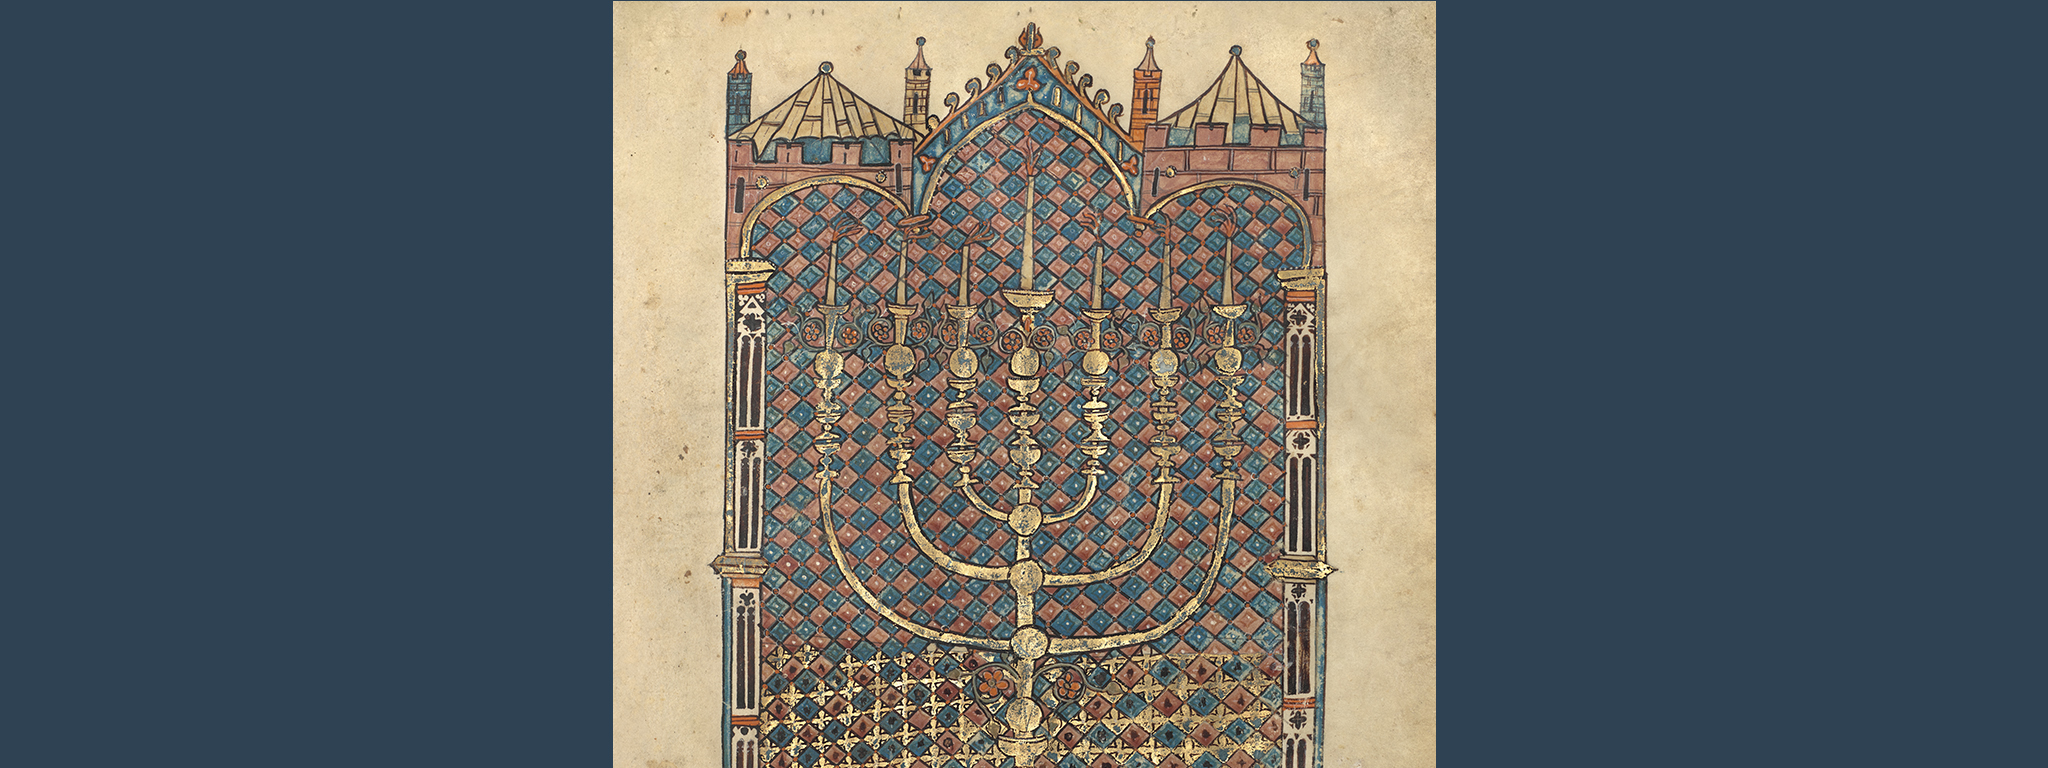 Menorah of the Tabernacle, Book of Leviticus (detail), from the Rothschild Pentateuch, France and/or Germany, 1296; artist unknown. The J. Paul Getty Museum. Acquired with the generous support of Jo Carole and Ronald S. Lauder